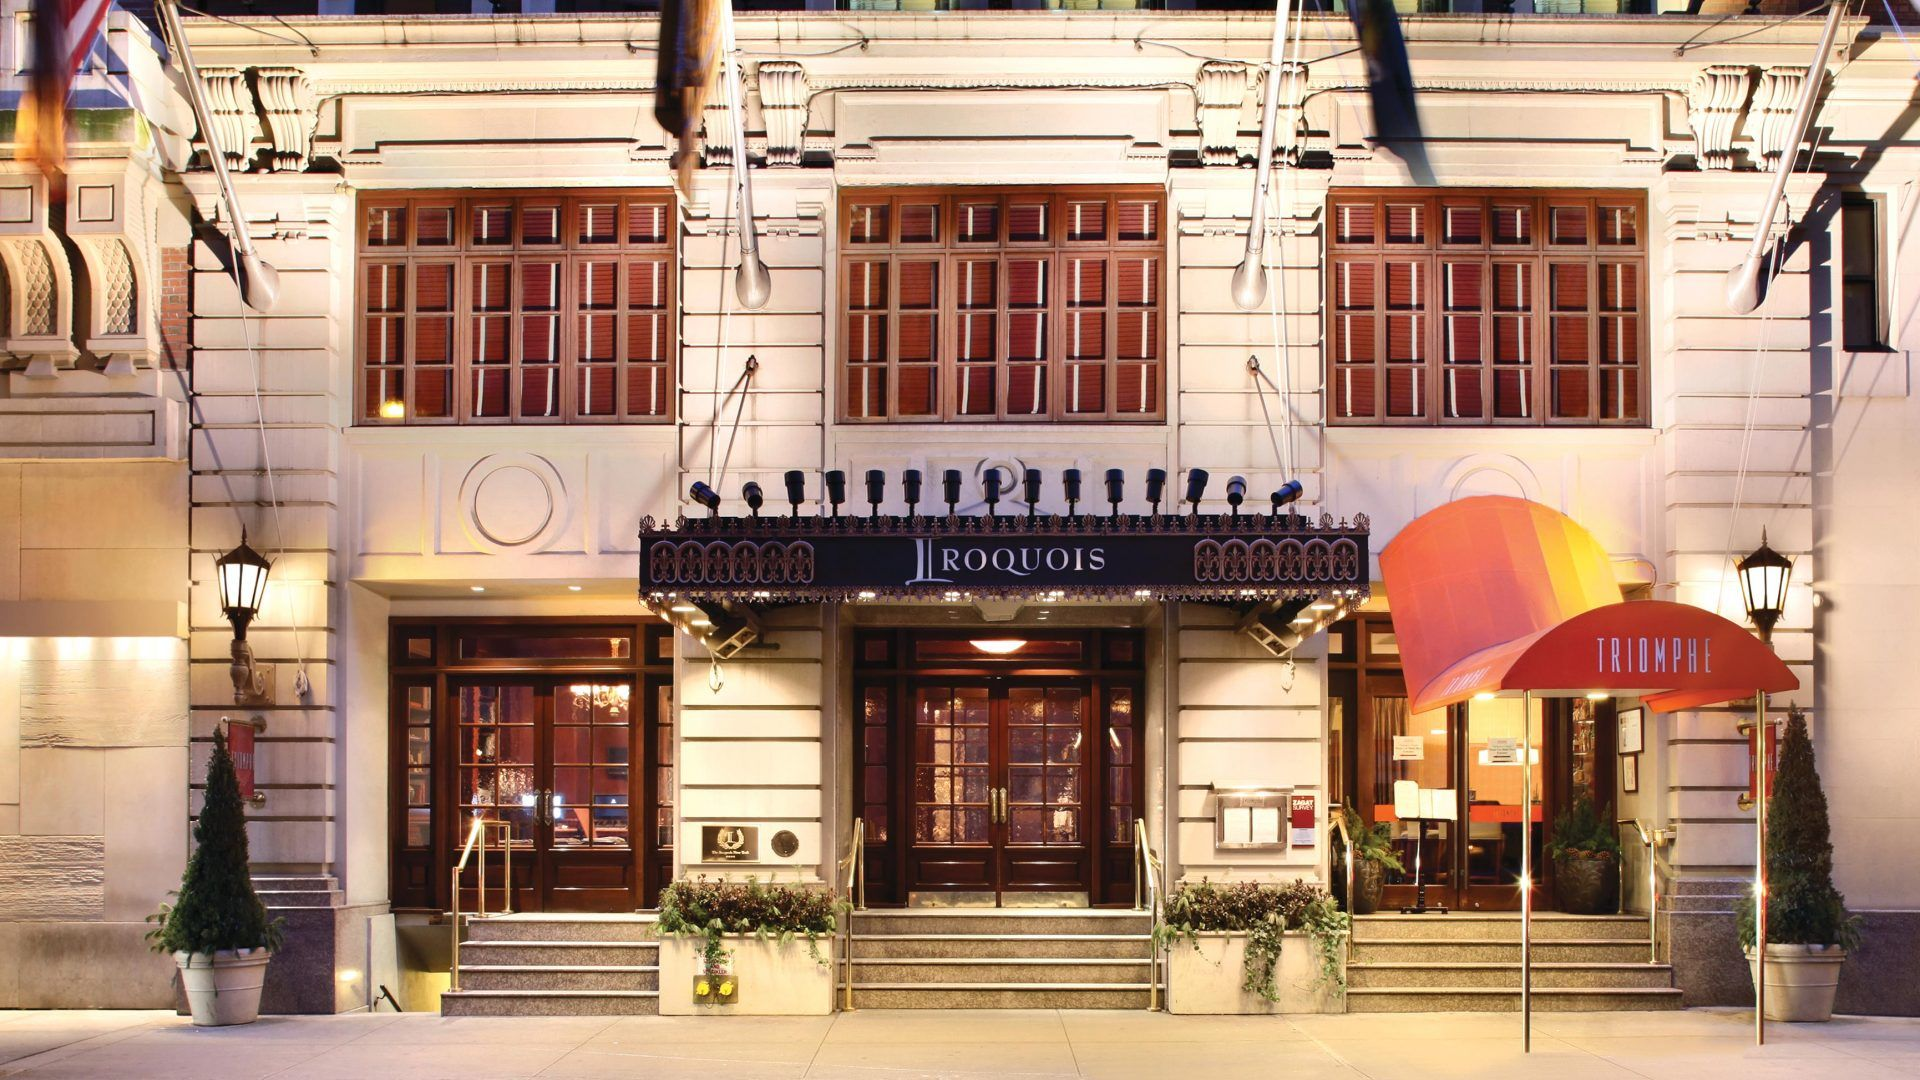 History Midtown Manhattan Boutique Hotel The Iroquois New York Hotels Iroquois Hotel Nyc Hotels